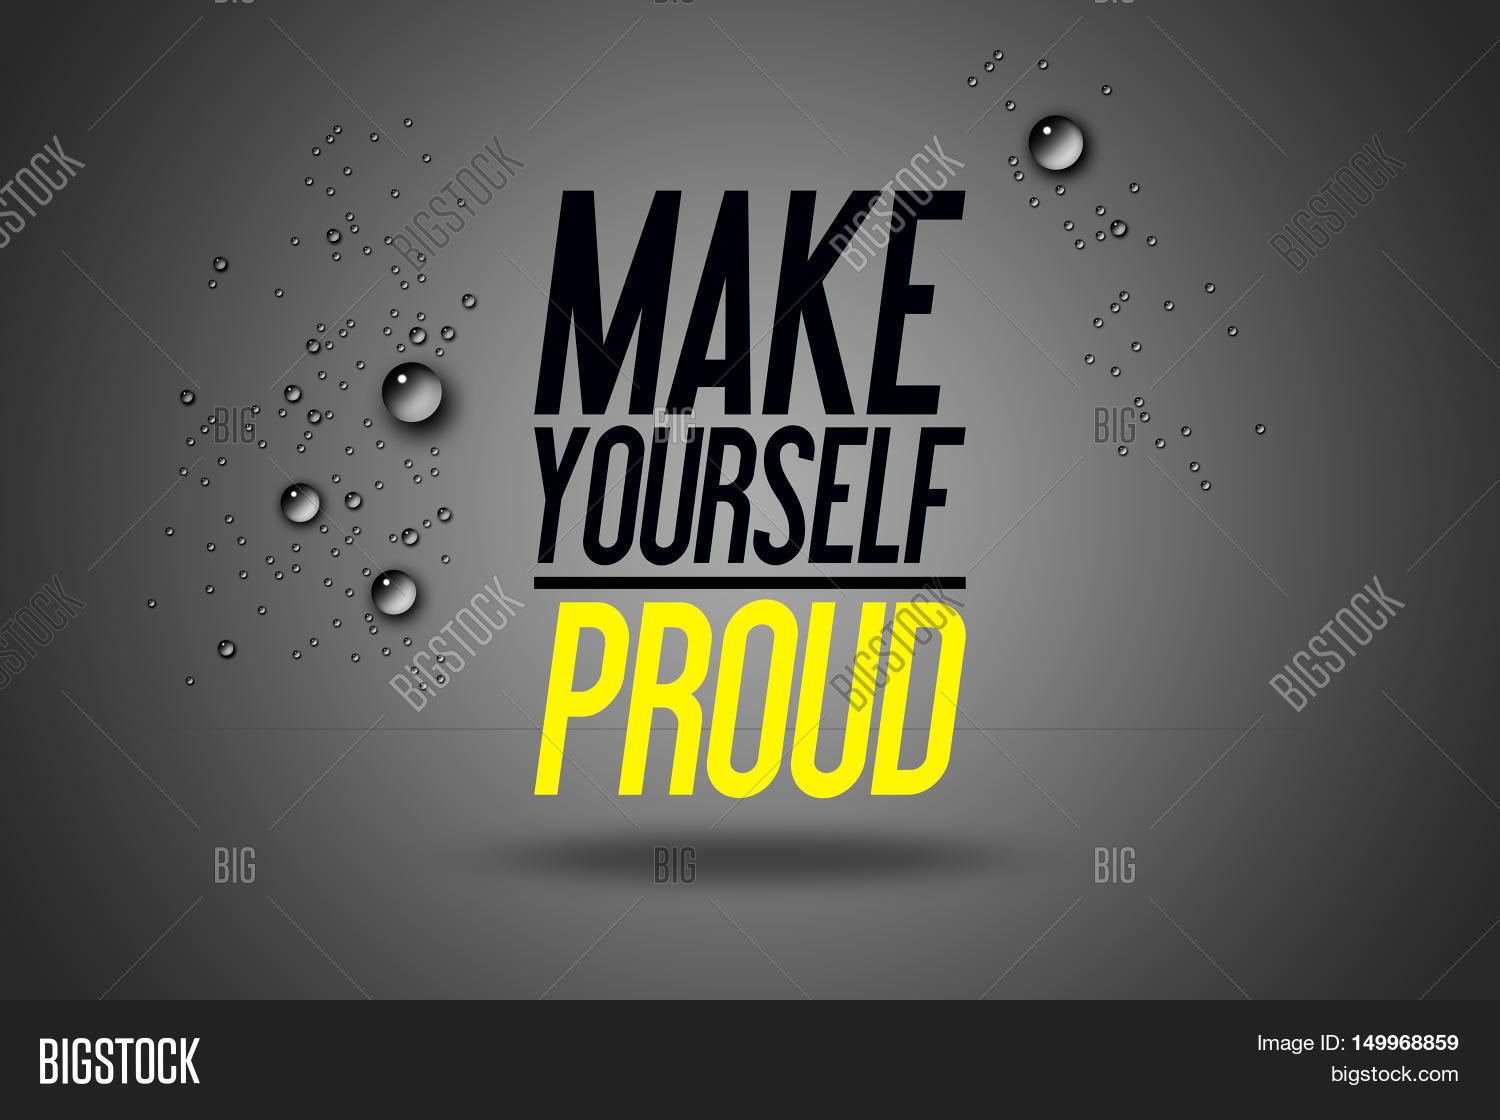 Images 70 Awesome Inspirational Typography Quotes: Make Yourself Proud - Advertising Image & Photo